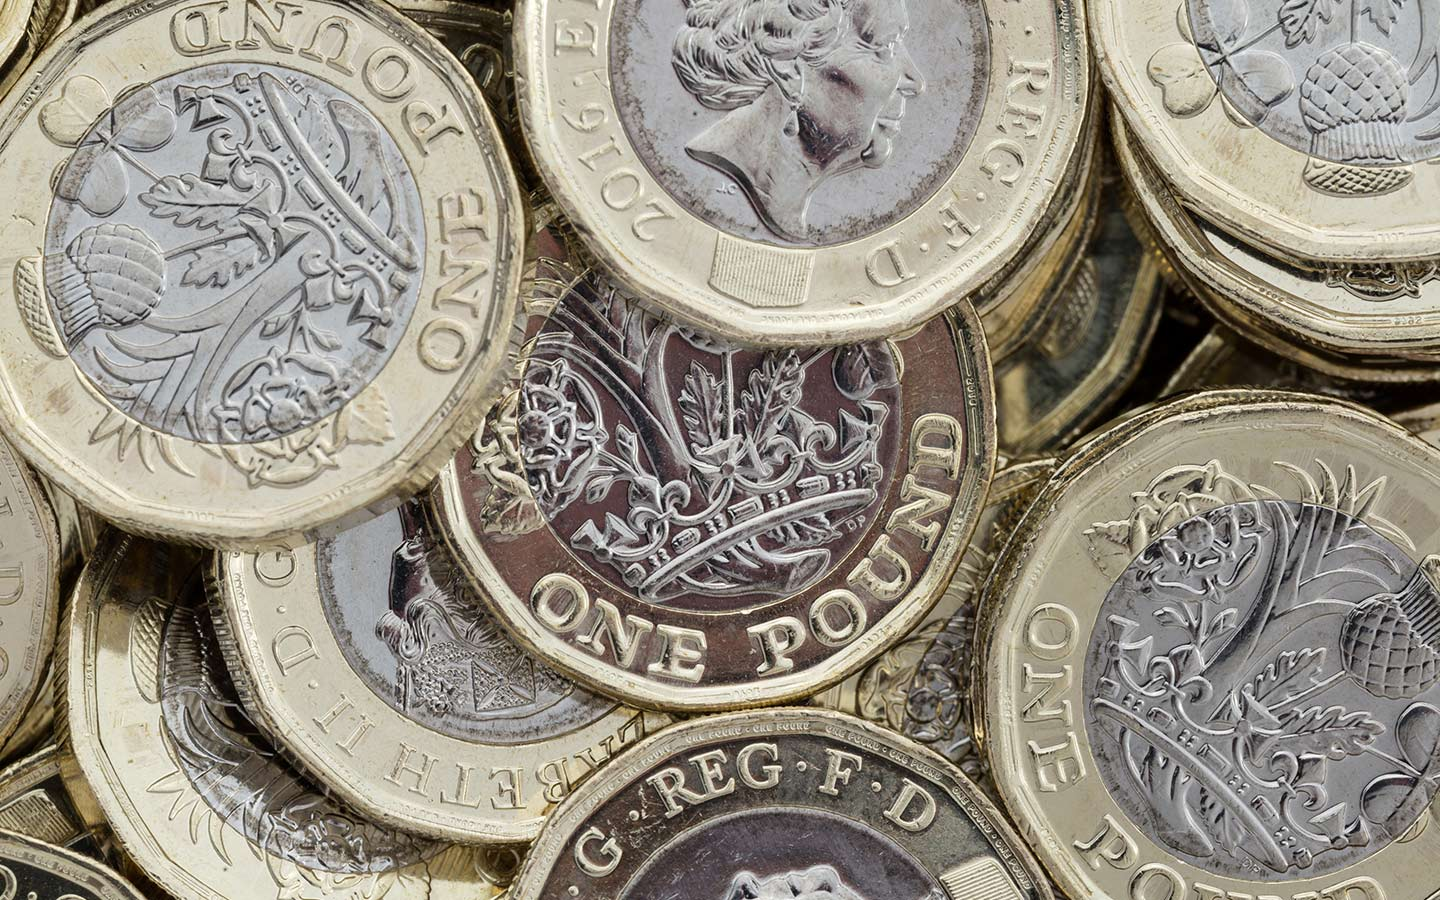 One British Pound coins scattered